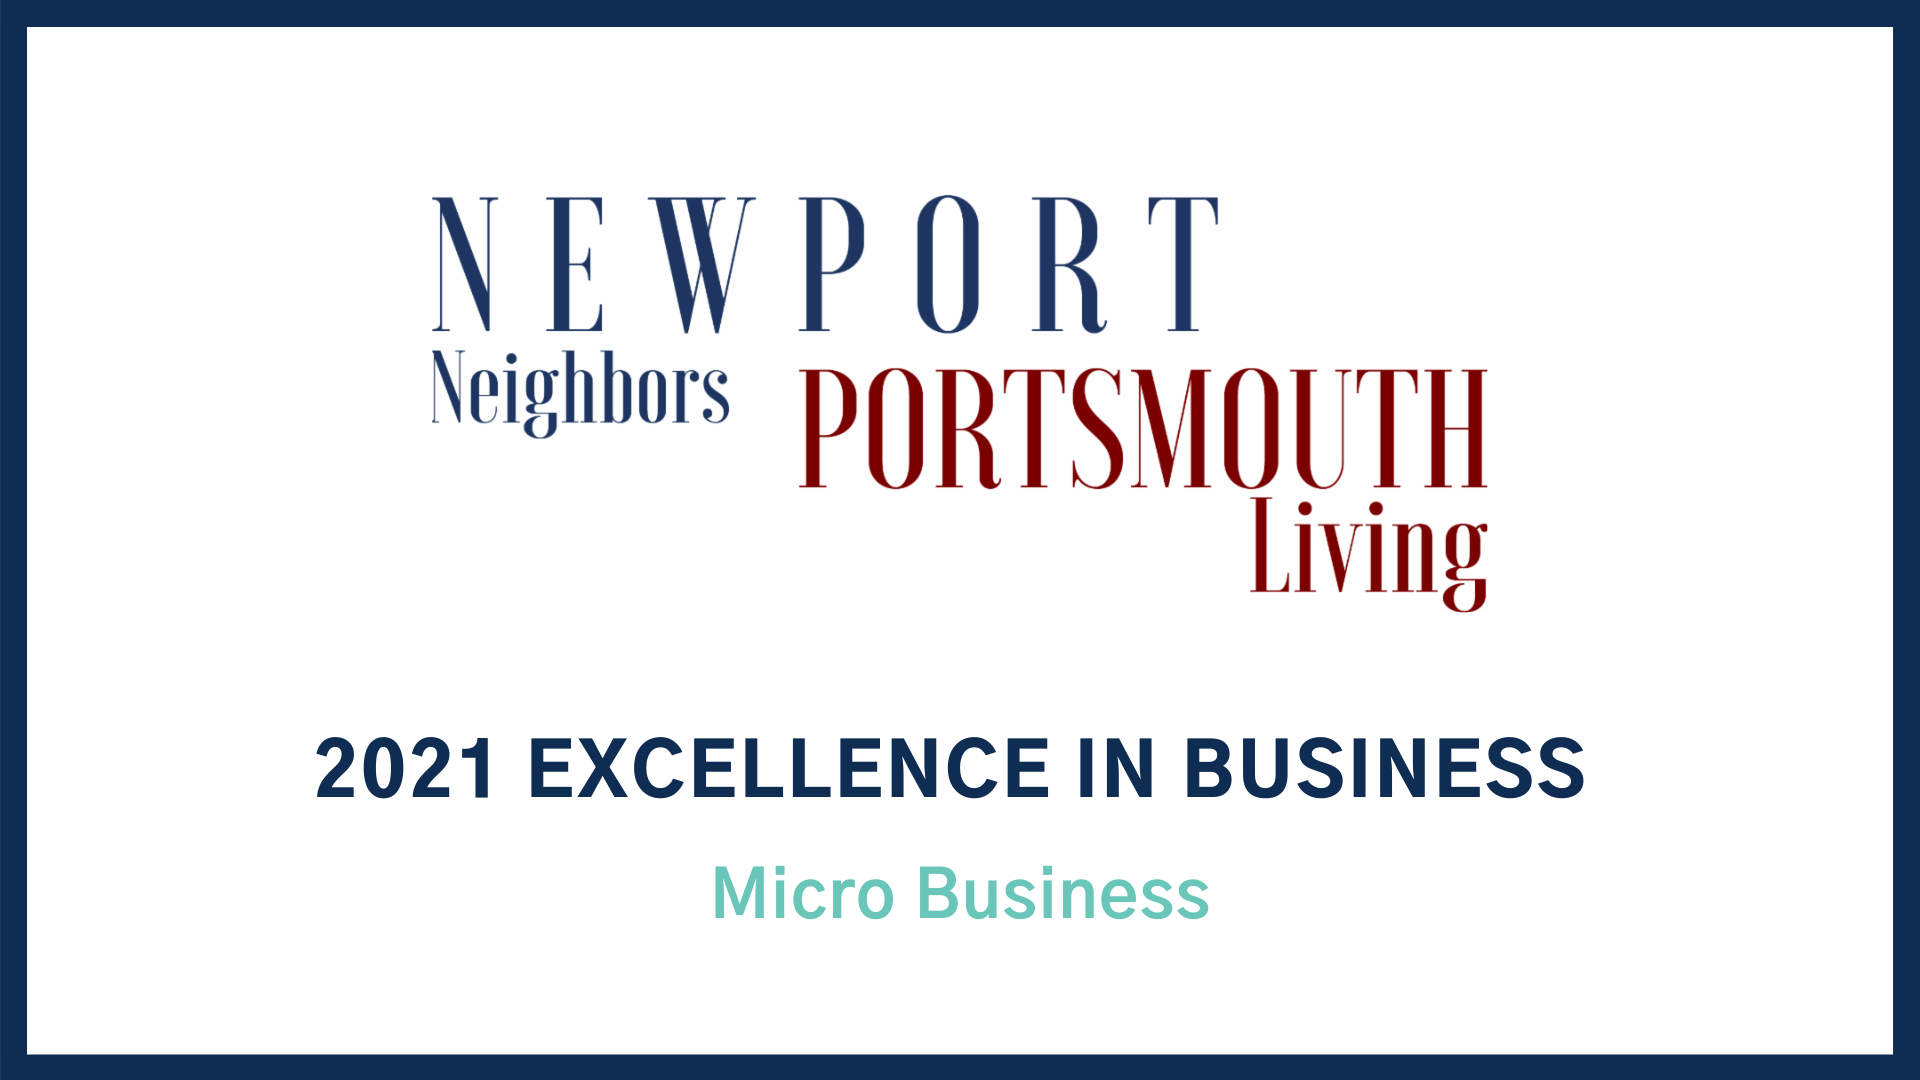 2021 Excellence in Business Award: Micro Business Newport Neighbors & Portsmouth Living Magazine